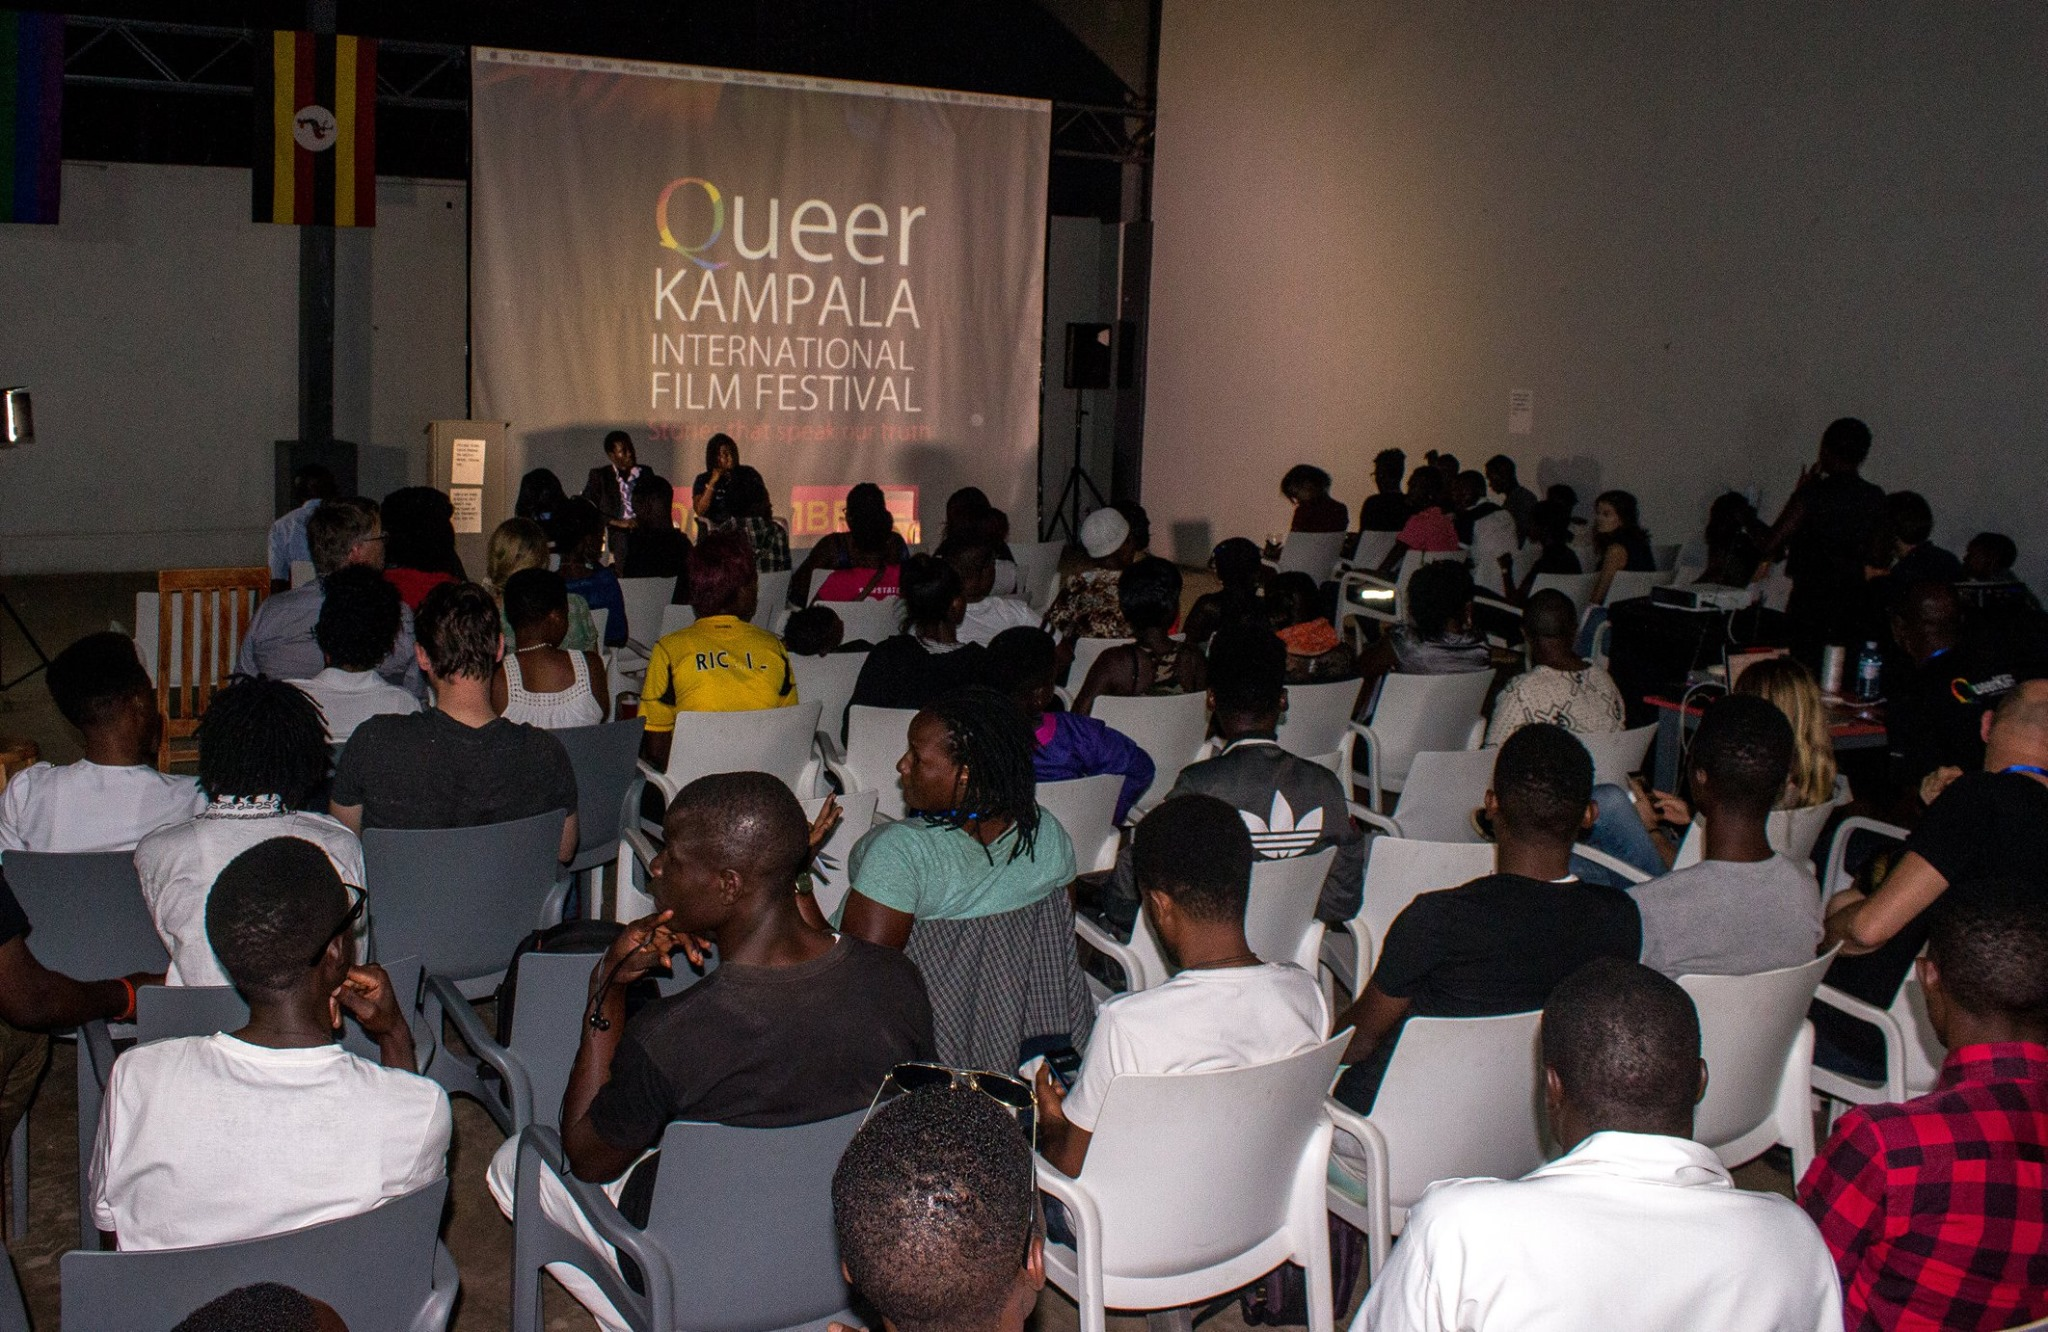 Sold-out opening night of Queer Kampala International Film Festival. (Photo courtesy of Queer KIFF)